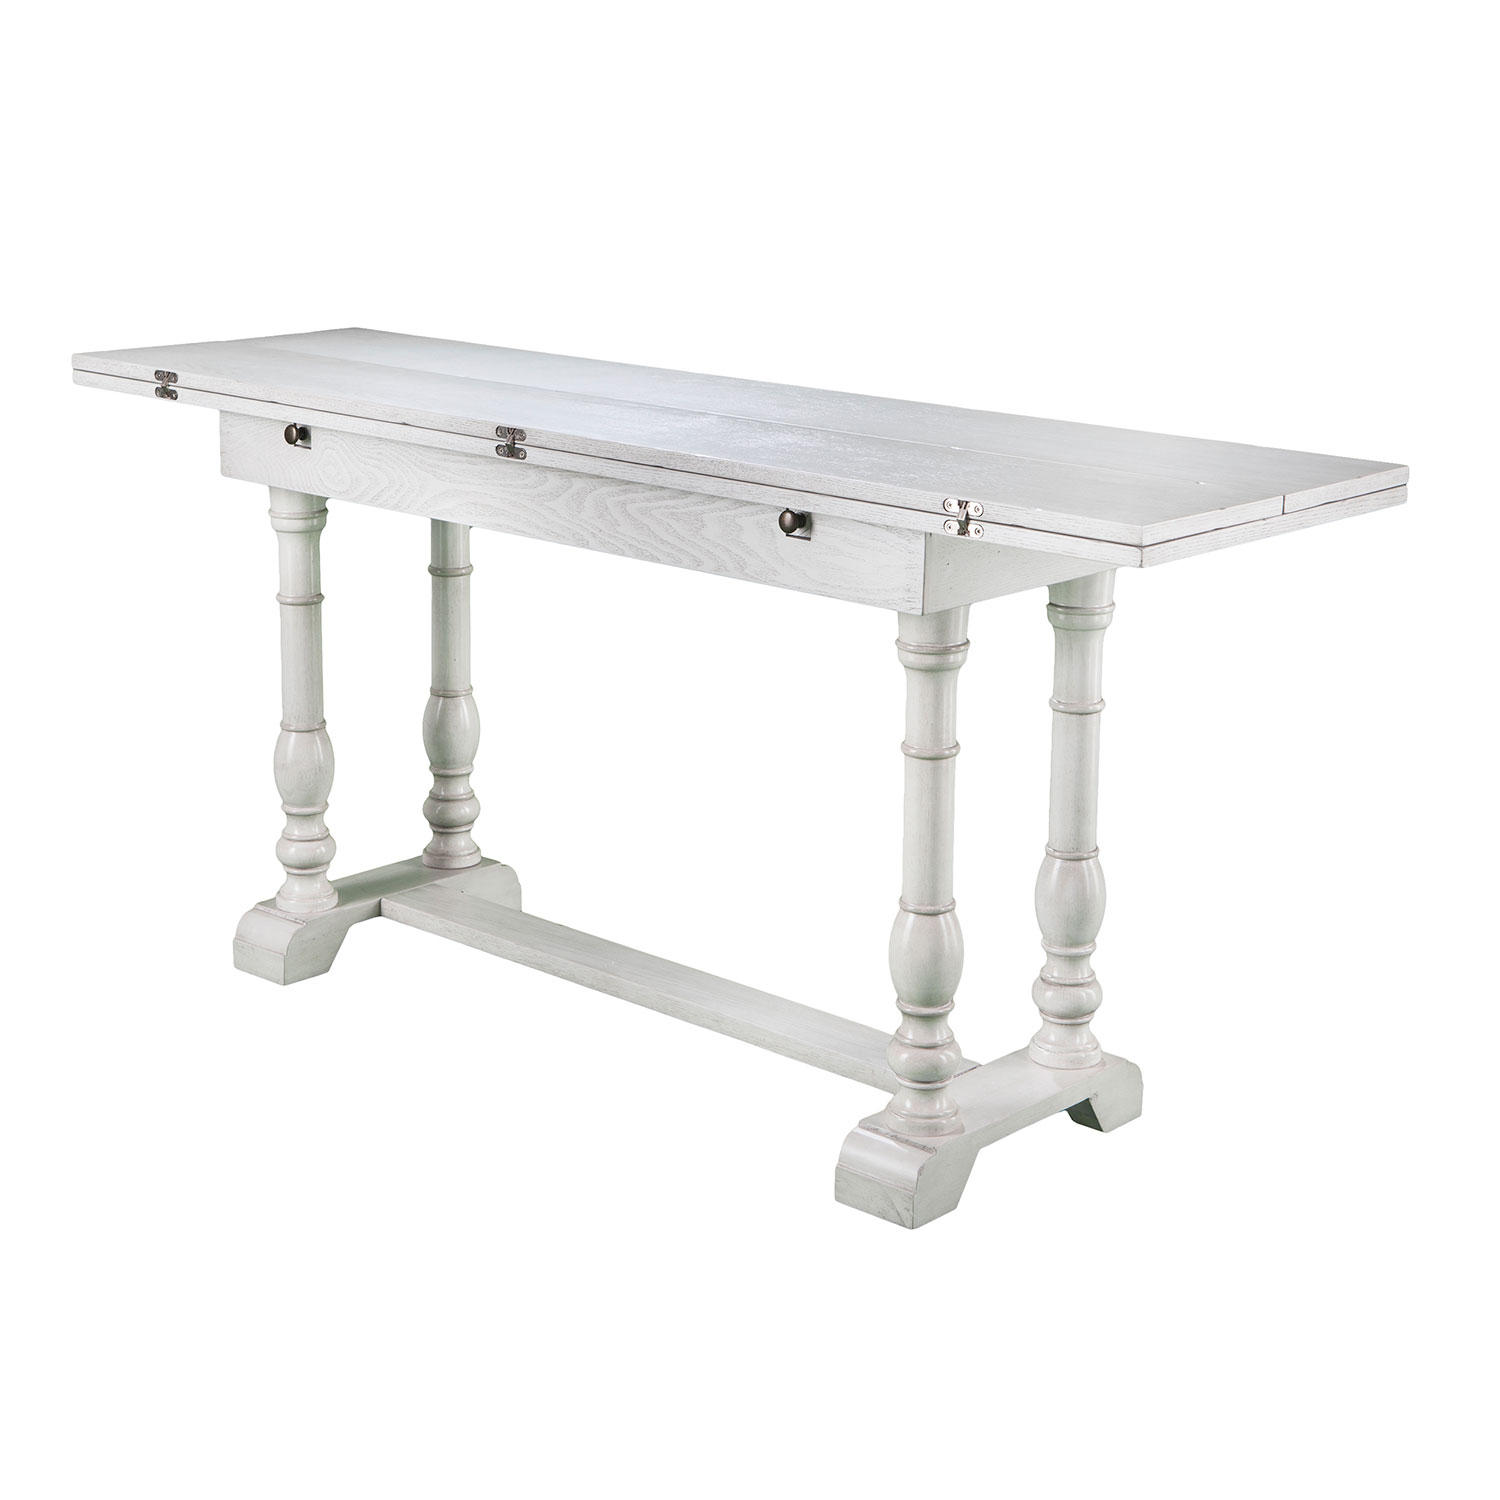 Sei Binx Farmhouse Table